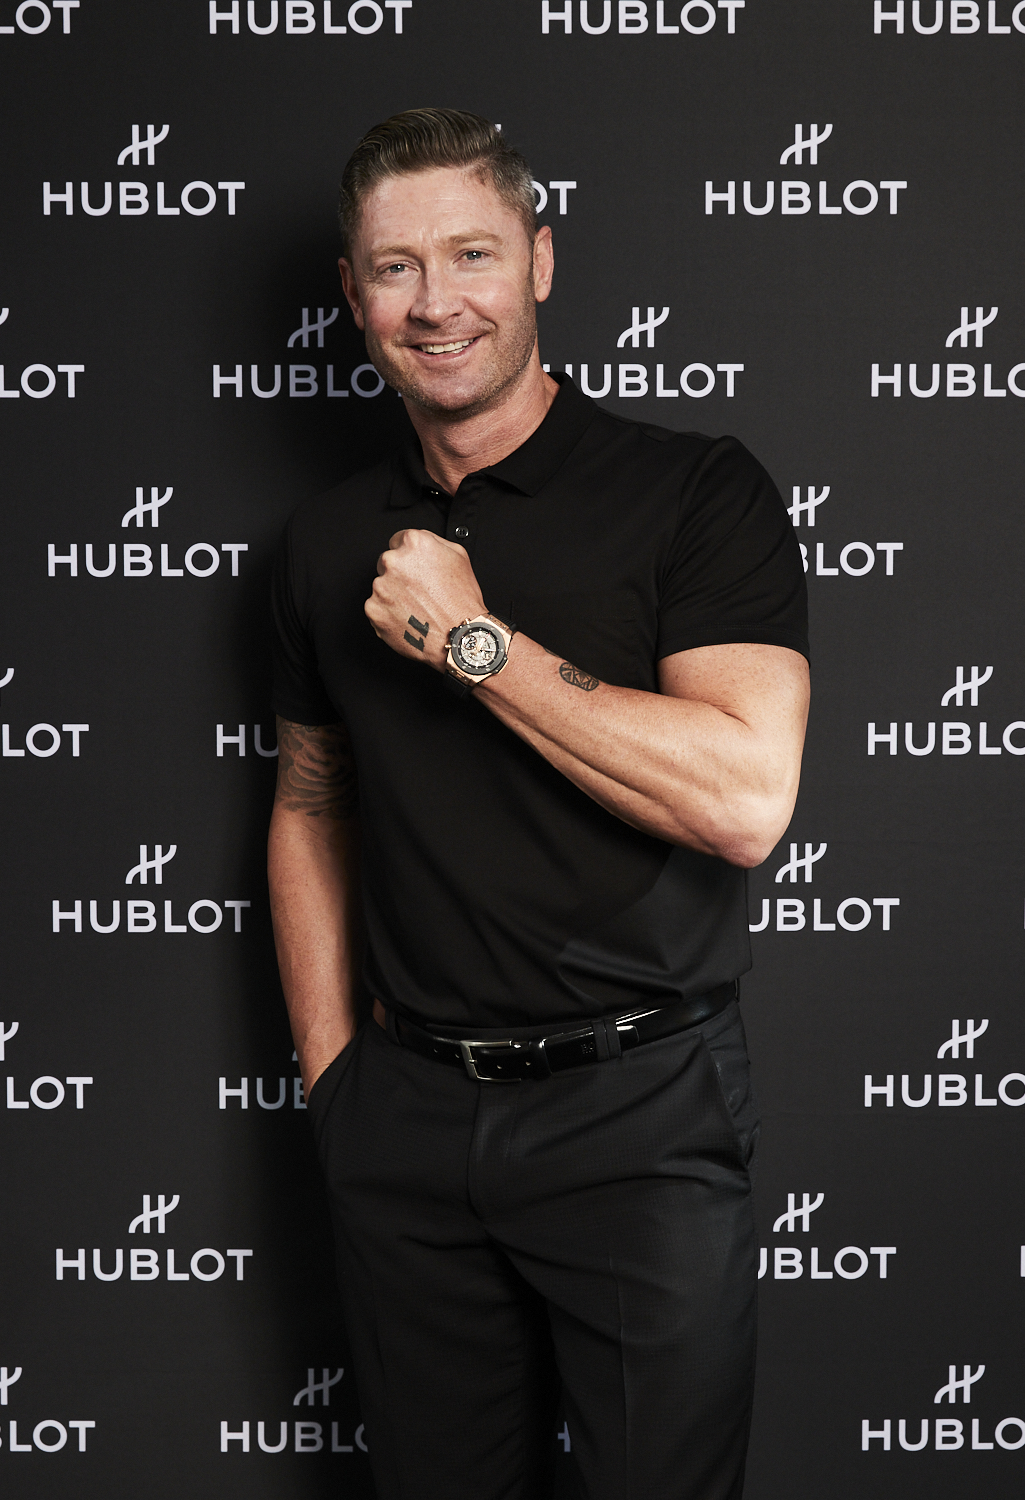 michael clarke hublot 40th anniversary